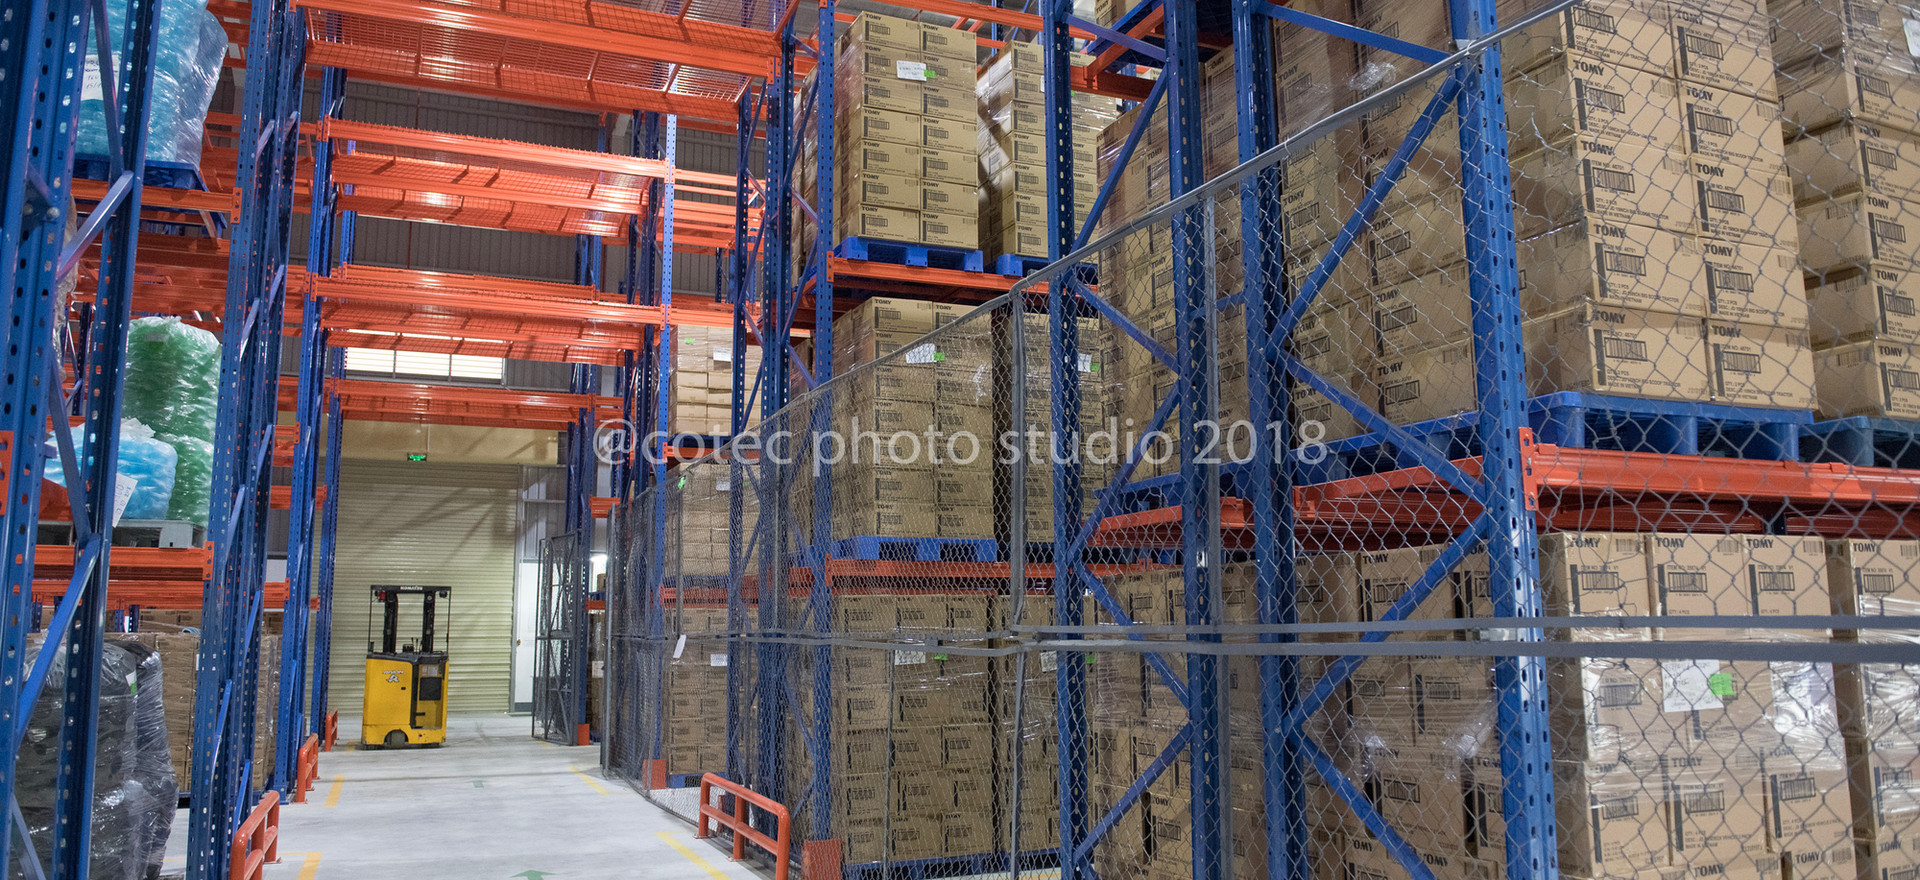 Final Goods Warehouse